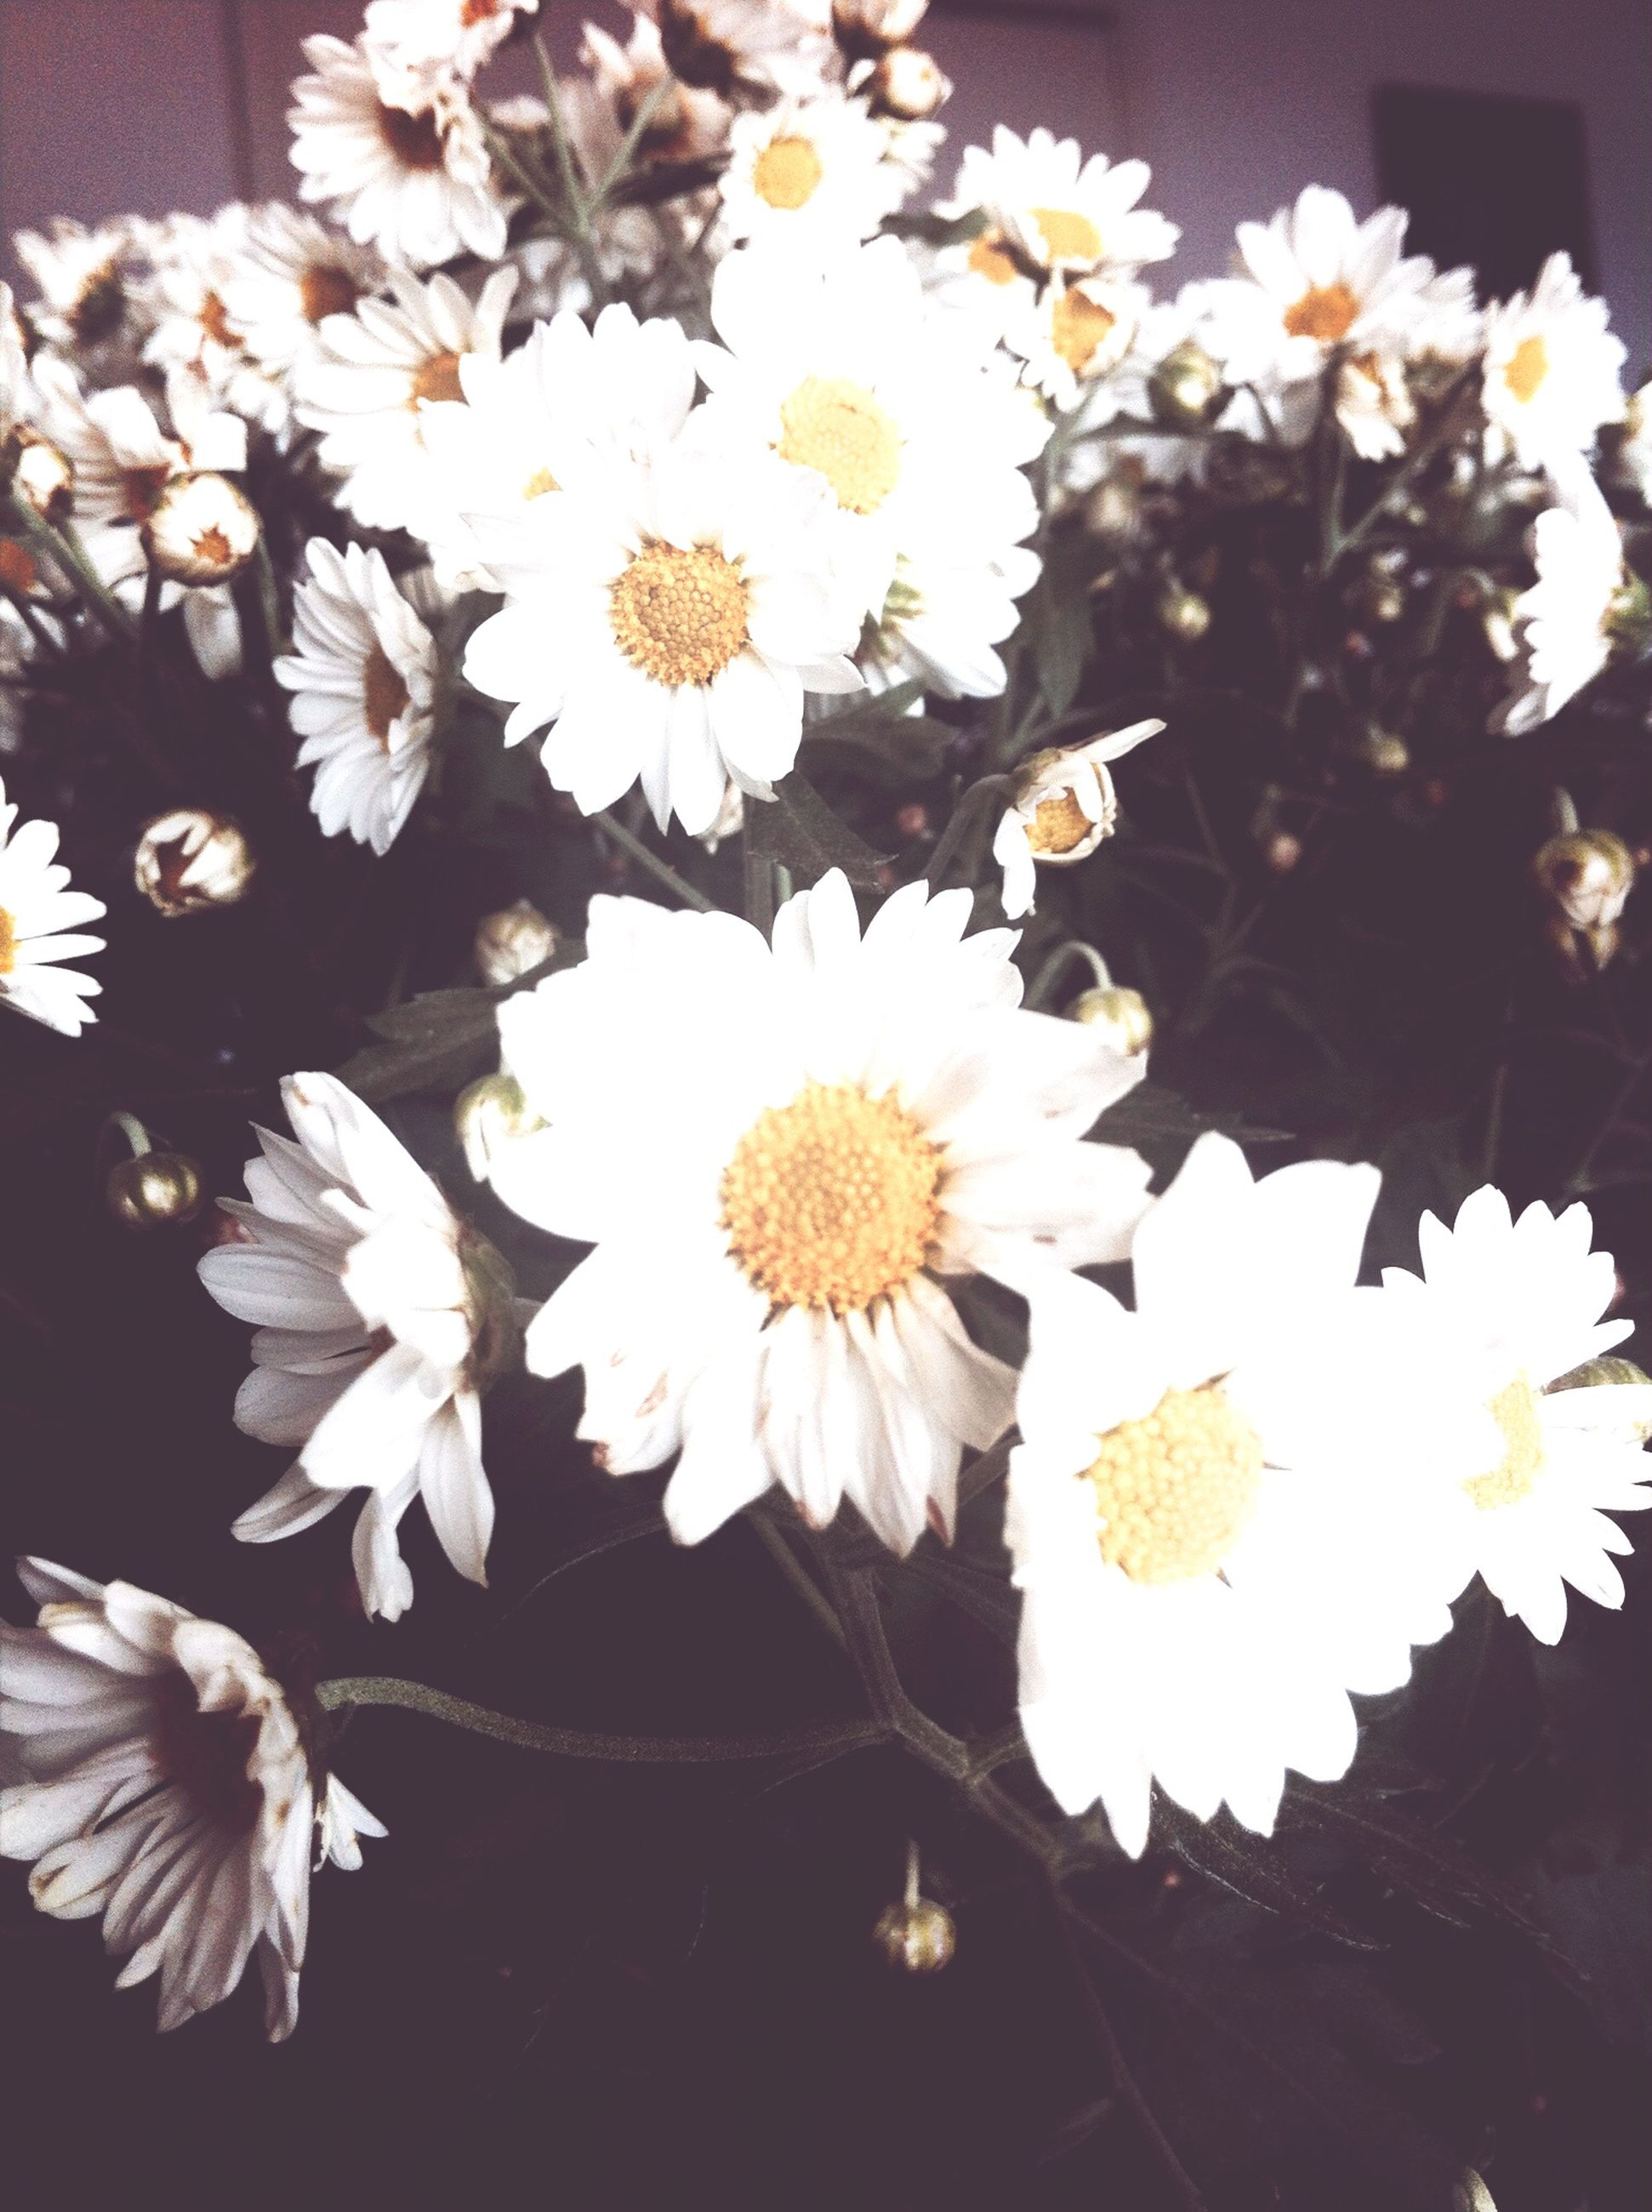 flower, petal, freshness, fragility, flower head, white color, beauty in nature, daisy, pollen, growth, blooming, nature, high angle view, close-up, blossom, in bloom, indoors, plant, stamen, white